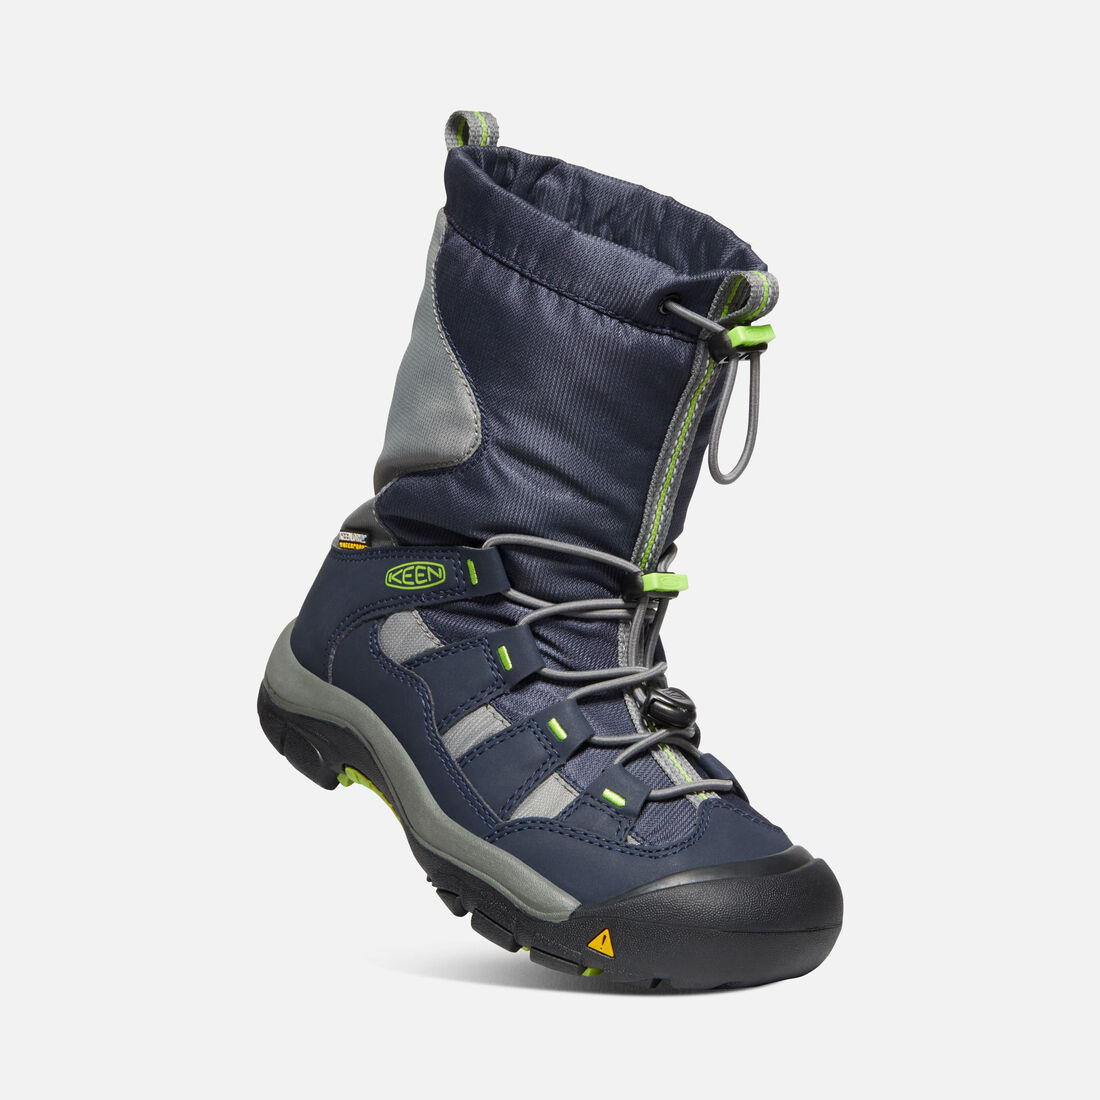 KEEN WINTERPORT blue nights/greenery vel.32/33